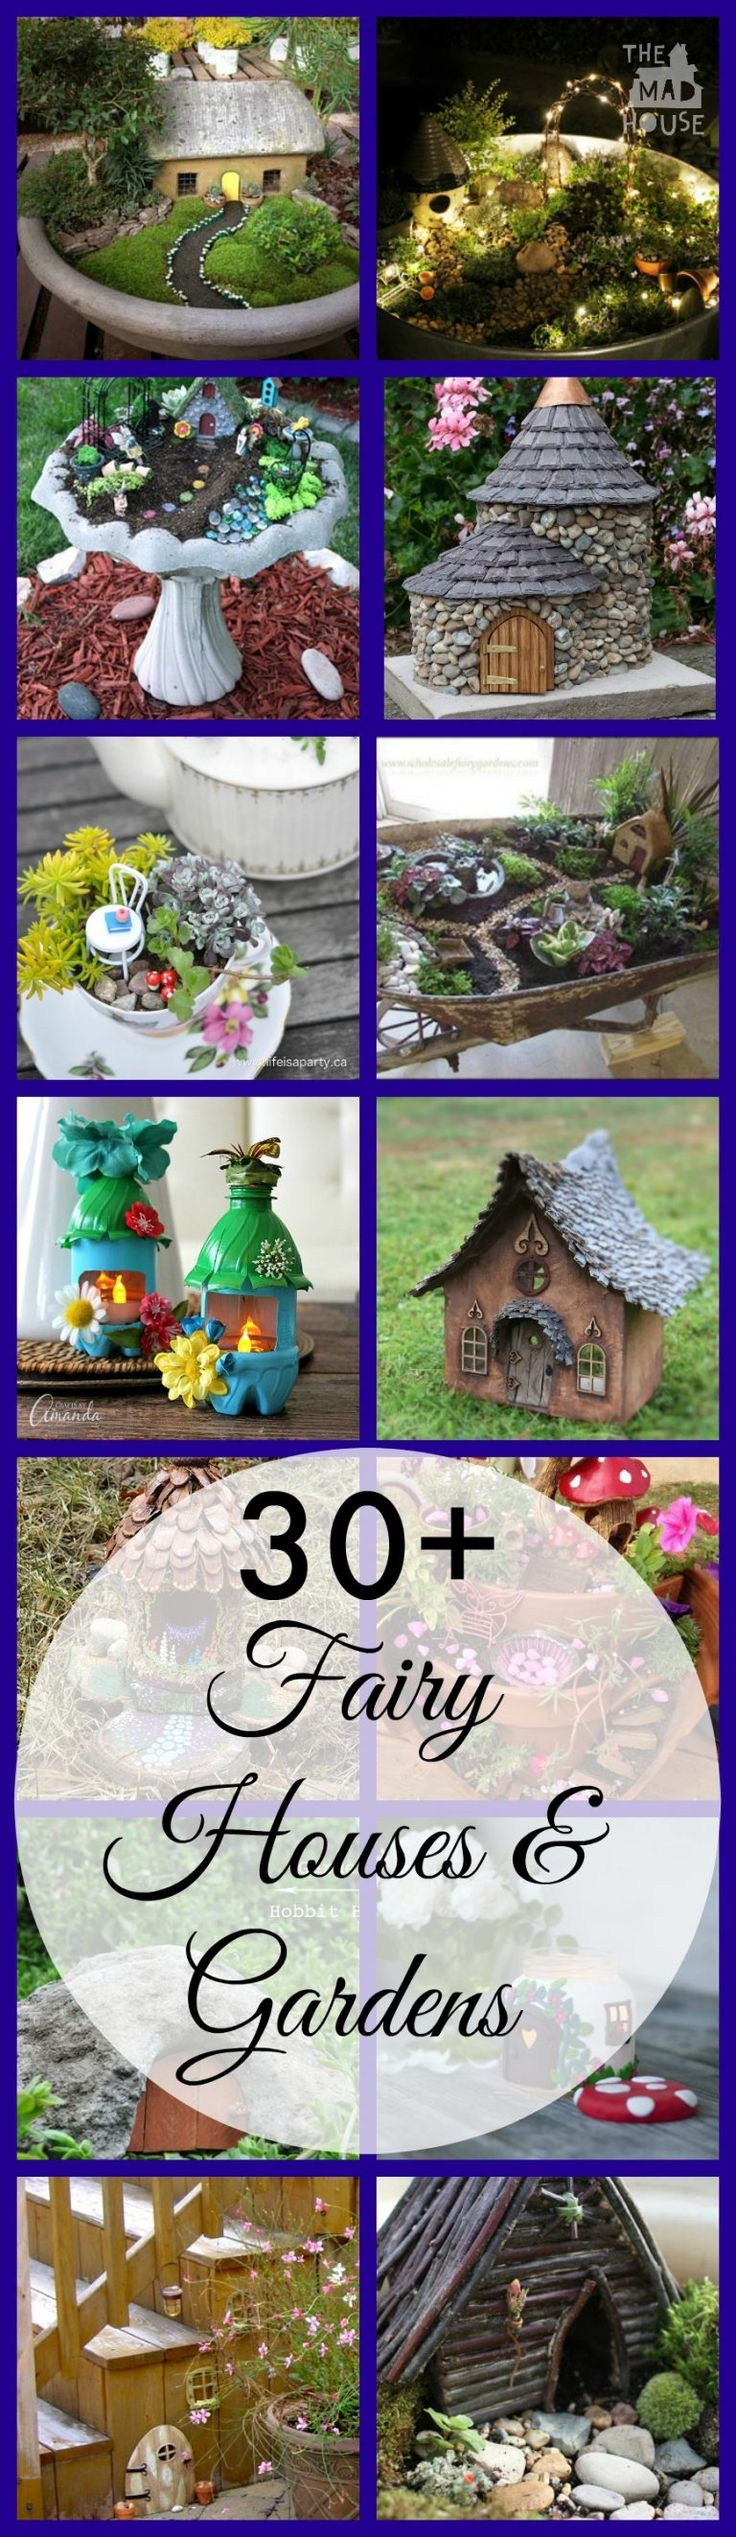 Over 30 fabulous fairy houses and gardens. Be inspired by these amazing DIY crafts to bring the magic of the fairies to your garden. A selection og fairy garden and fairy house tutorials for both children and adults.